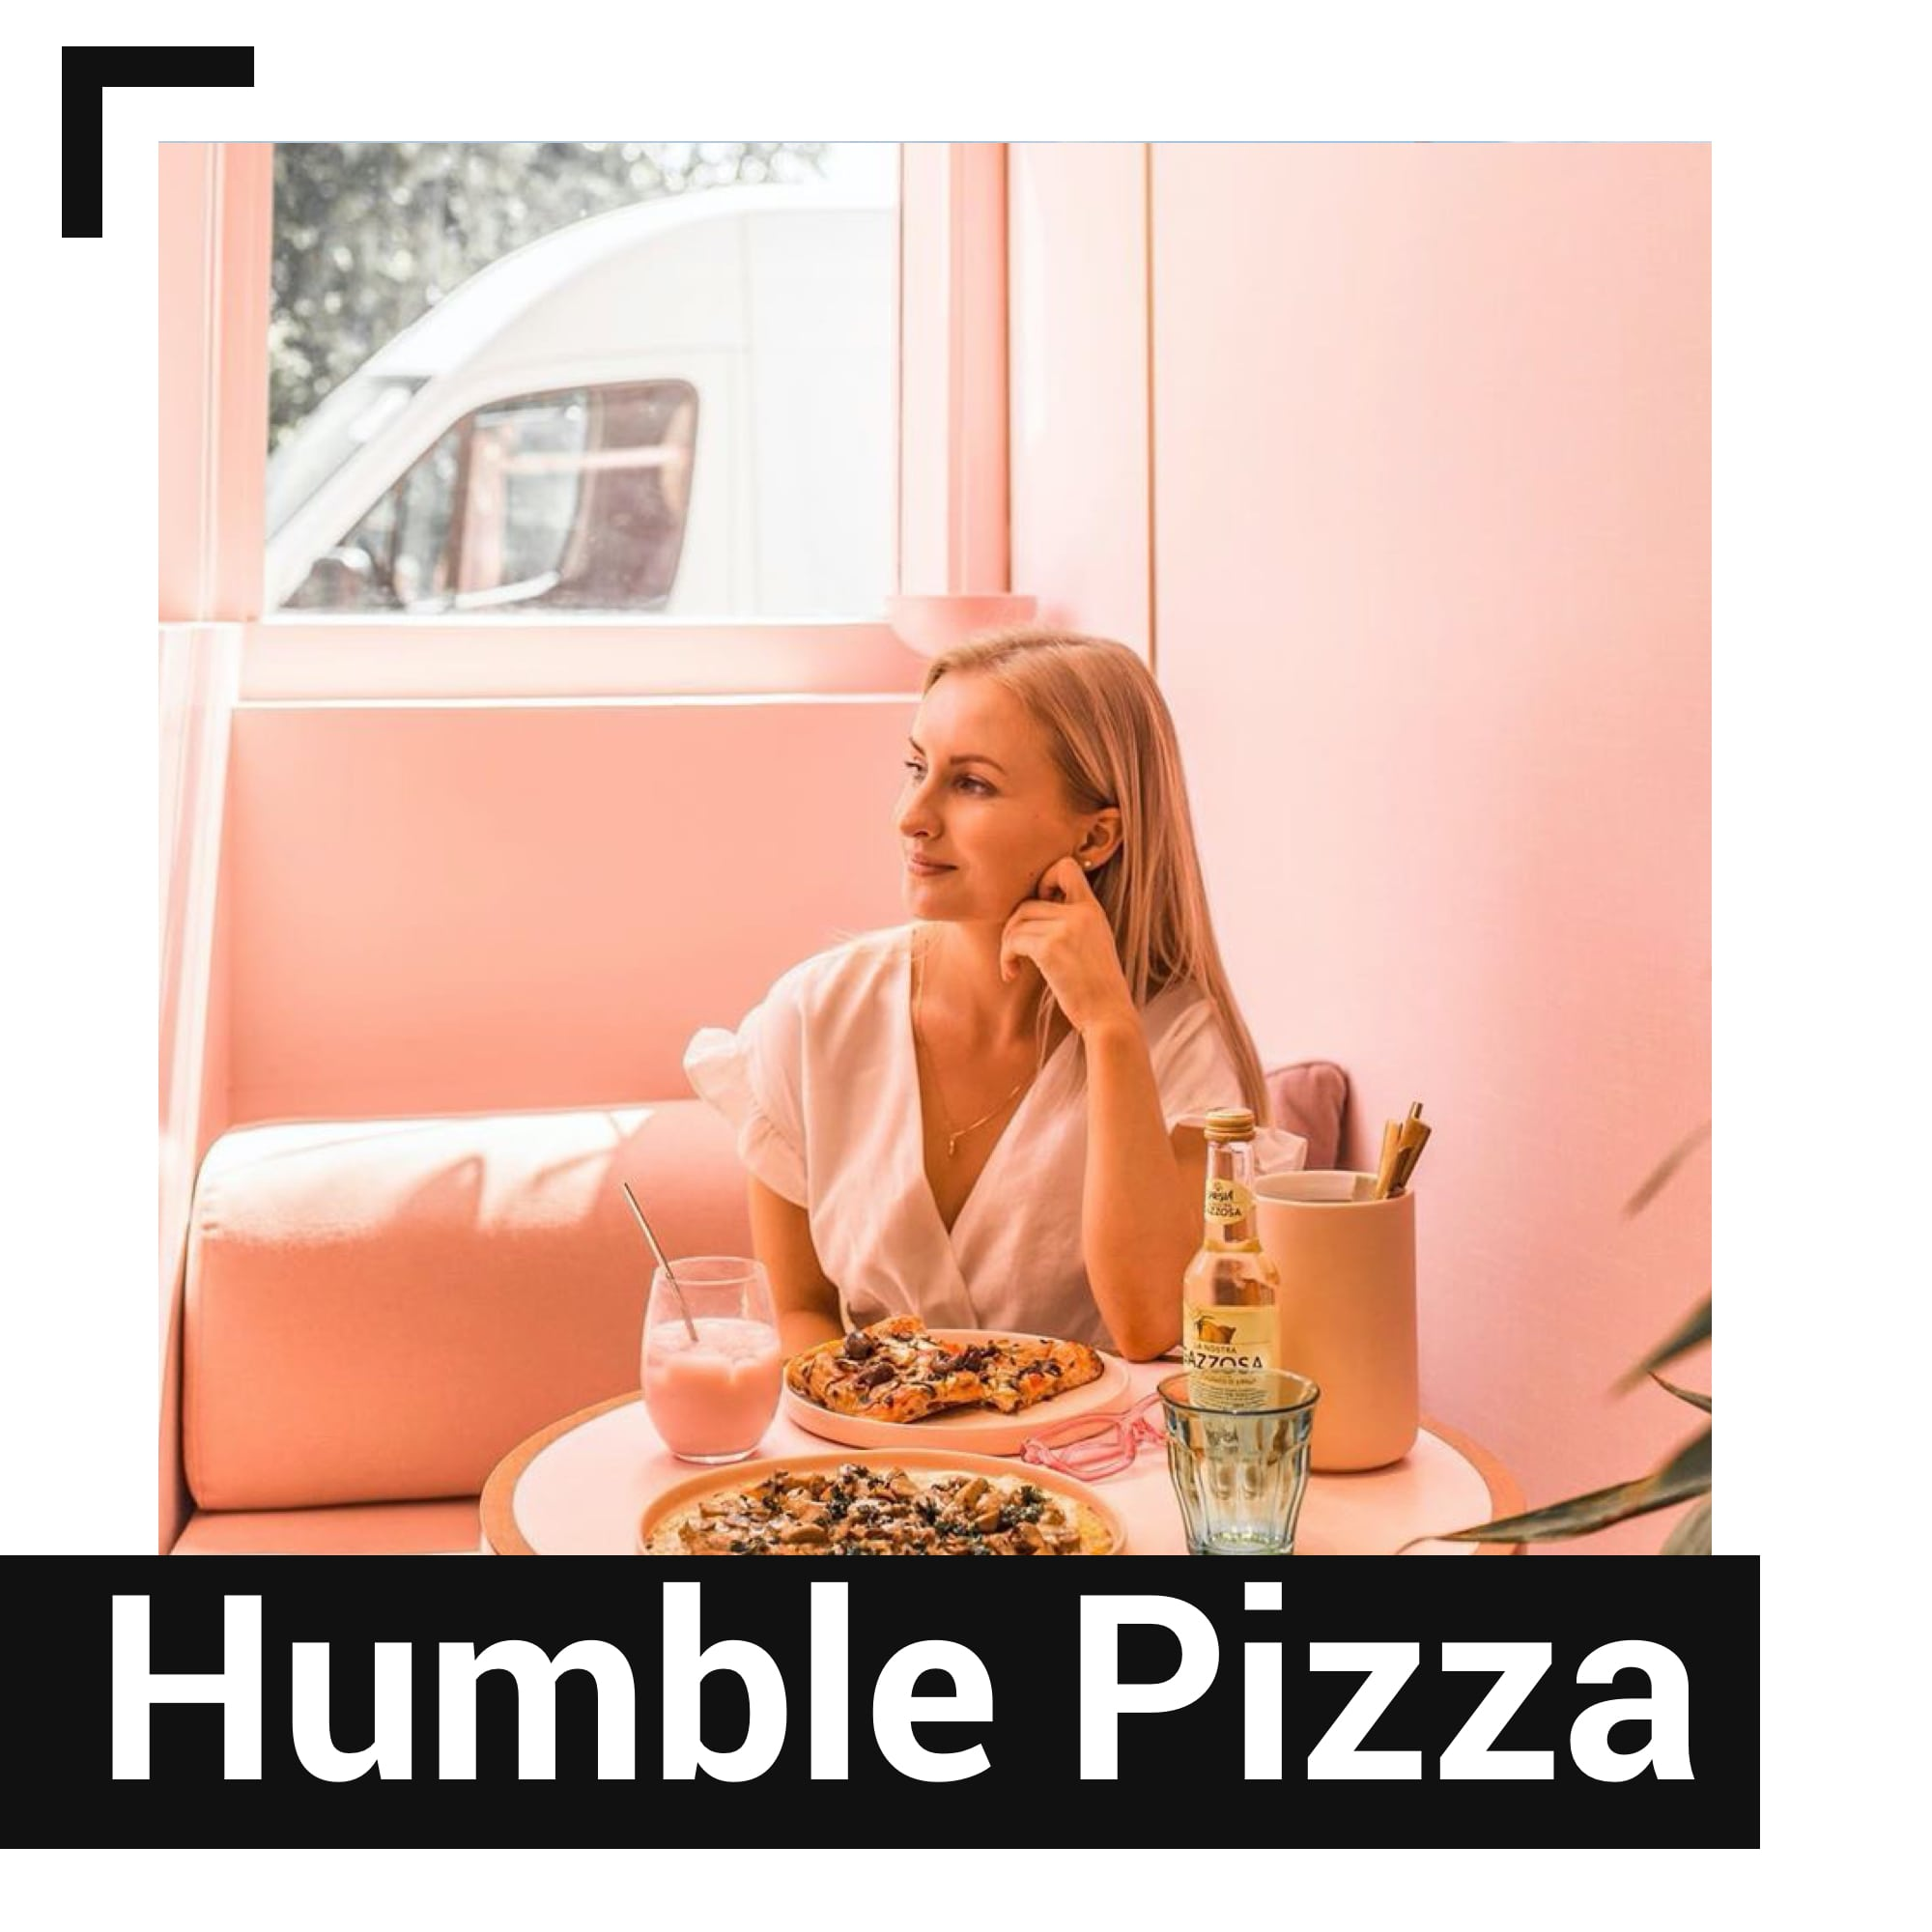 Humble Pizza in London